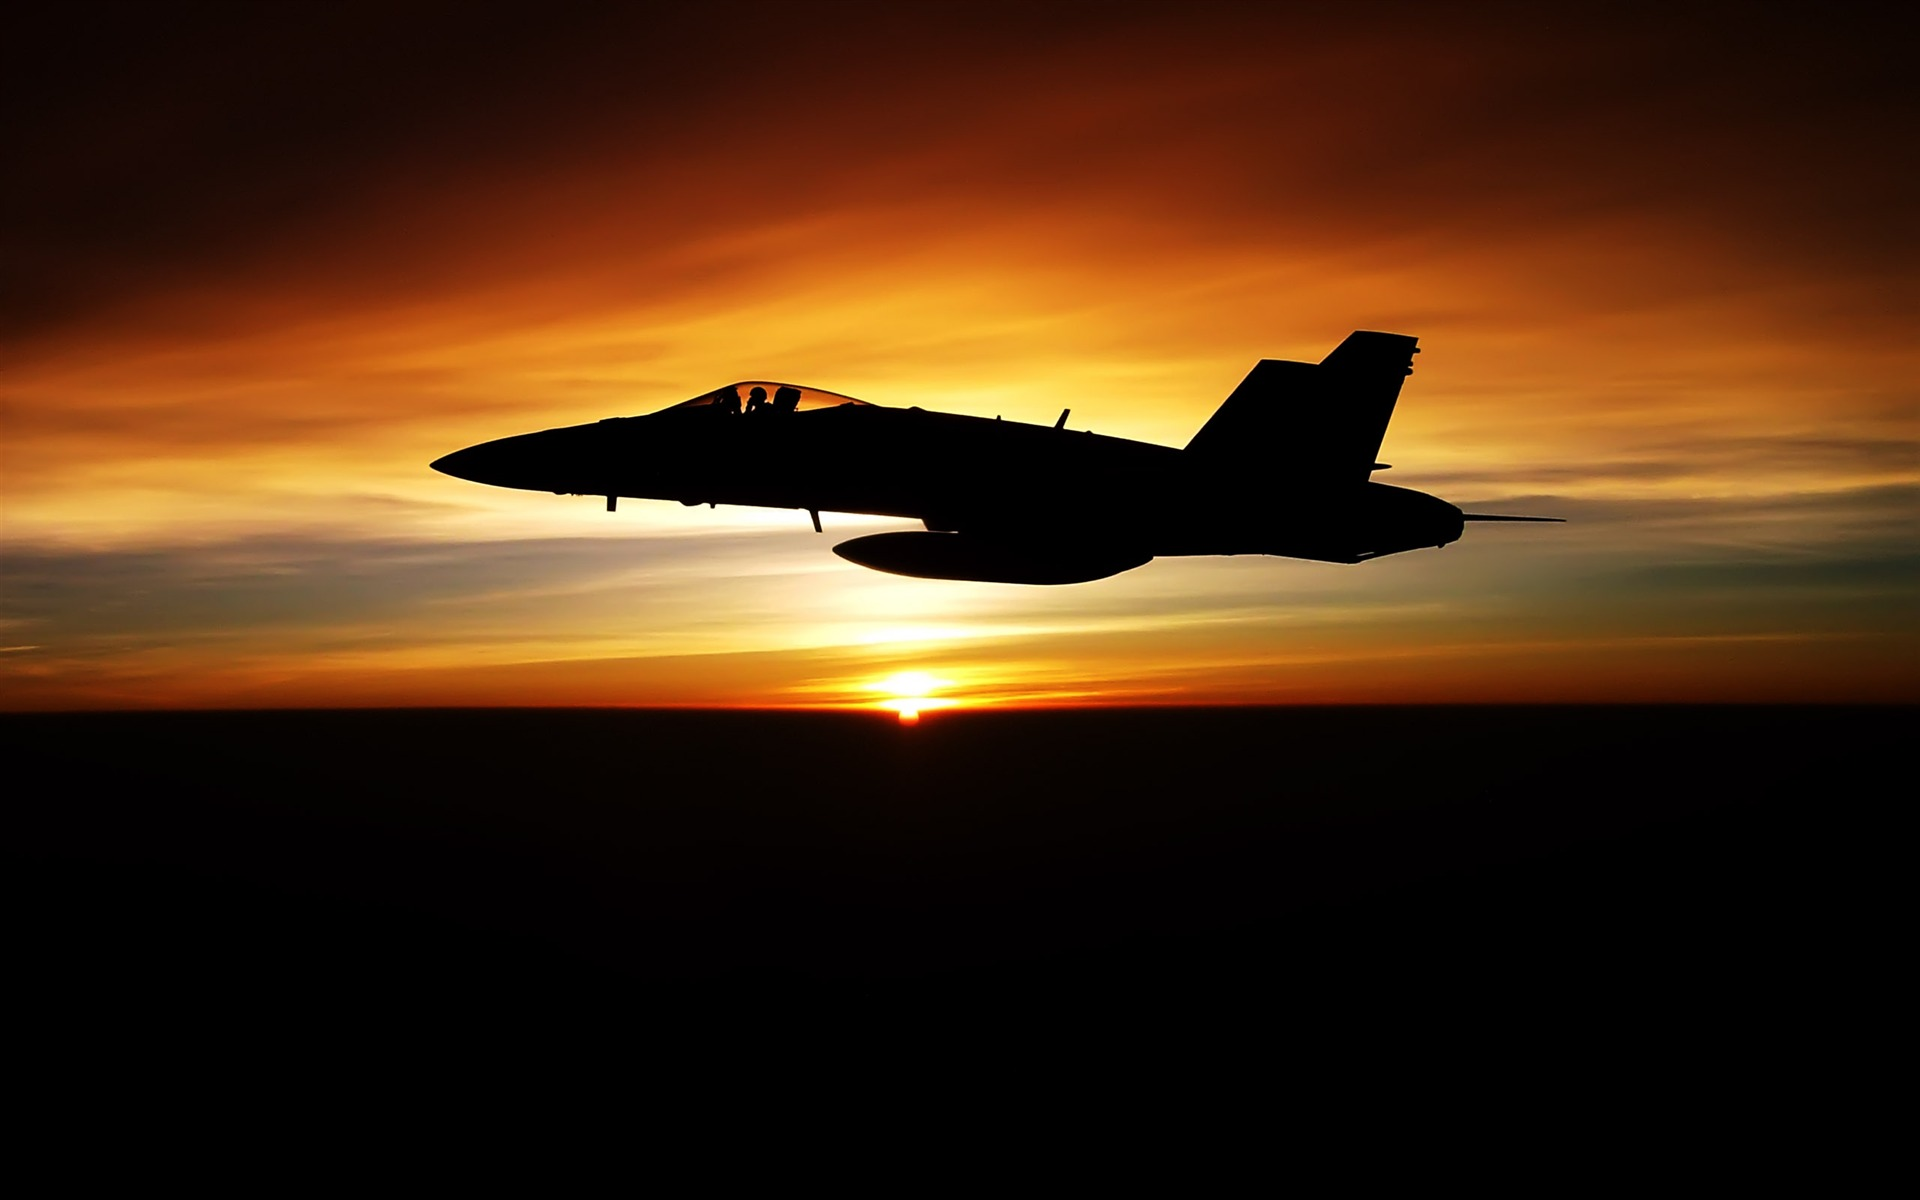 air force desktop wallpaper - photo #25